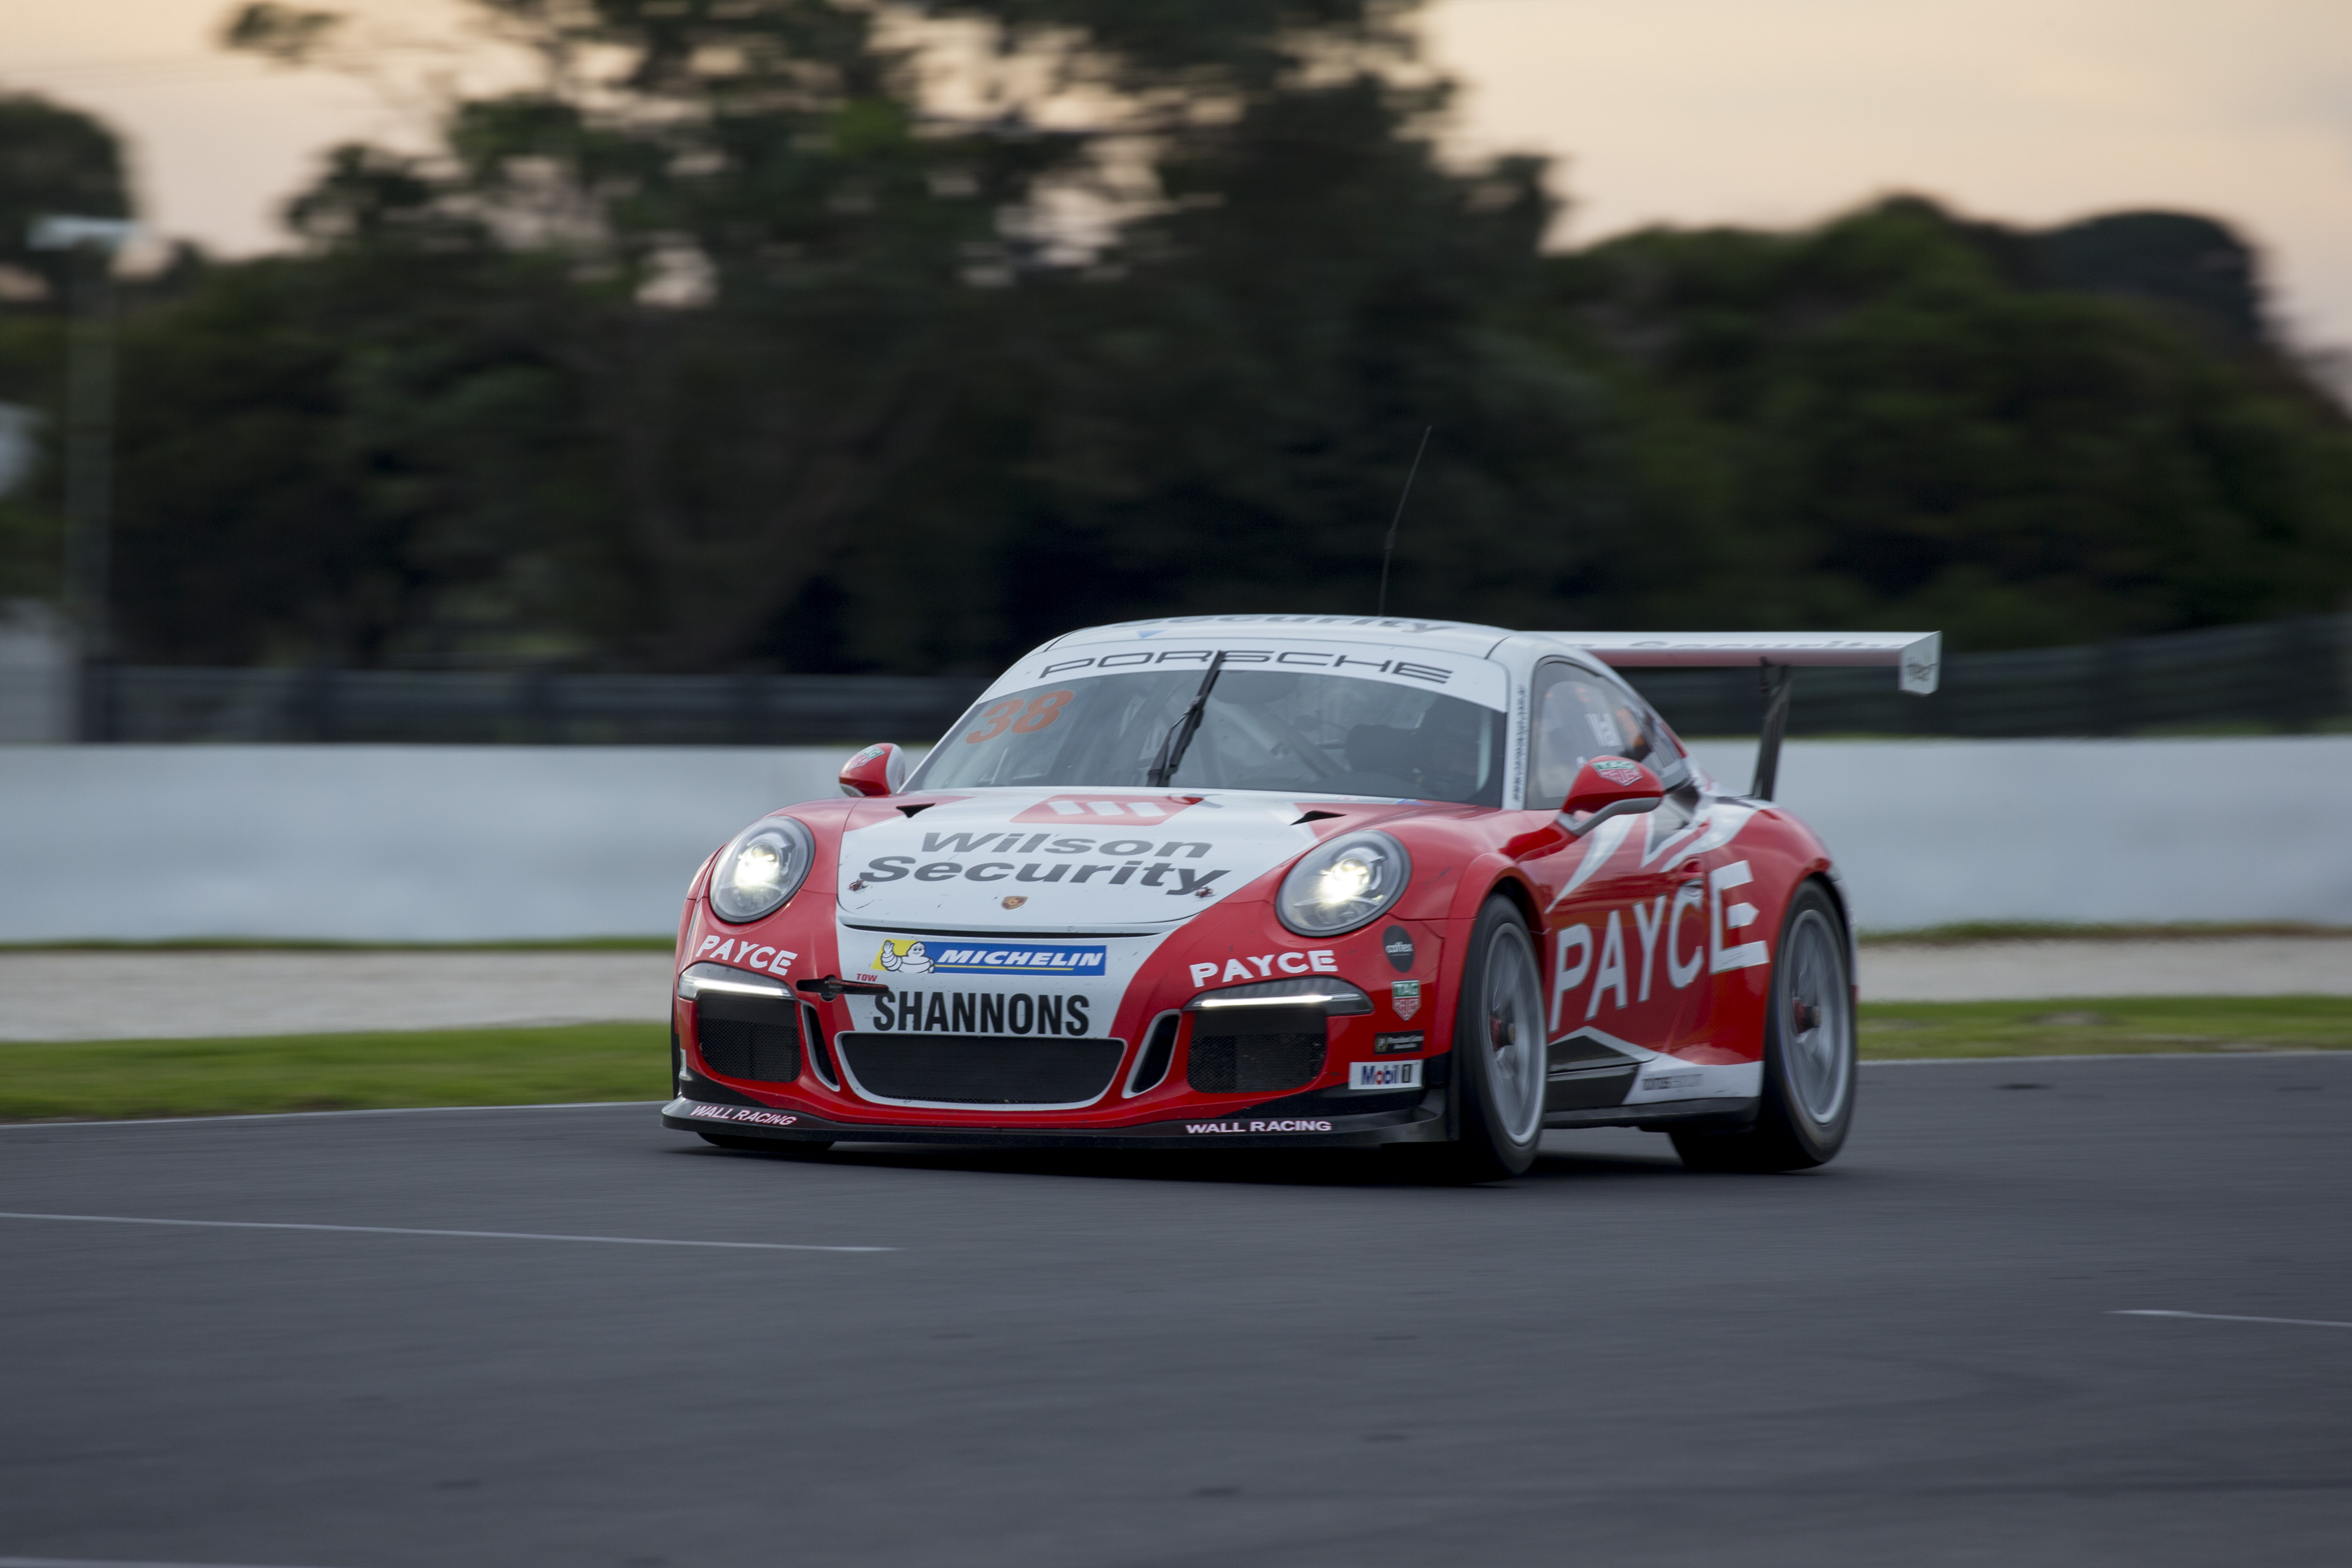 p38-Wall-CarreraCup-R3-2017-2688